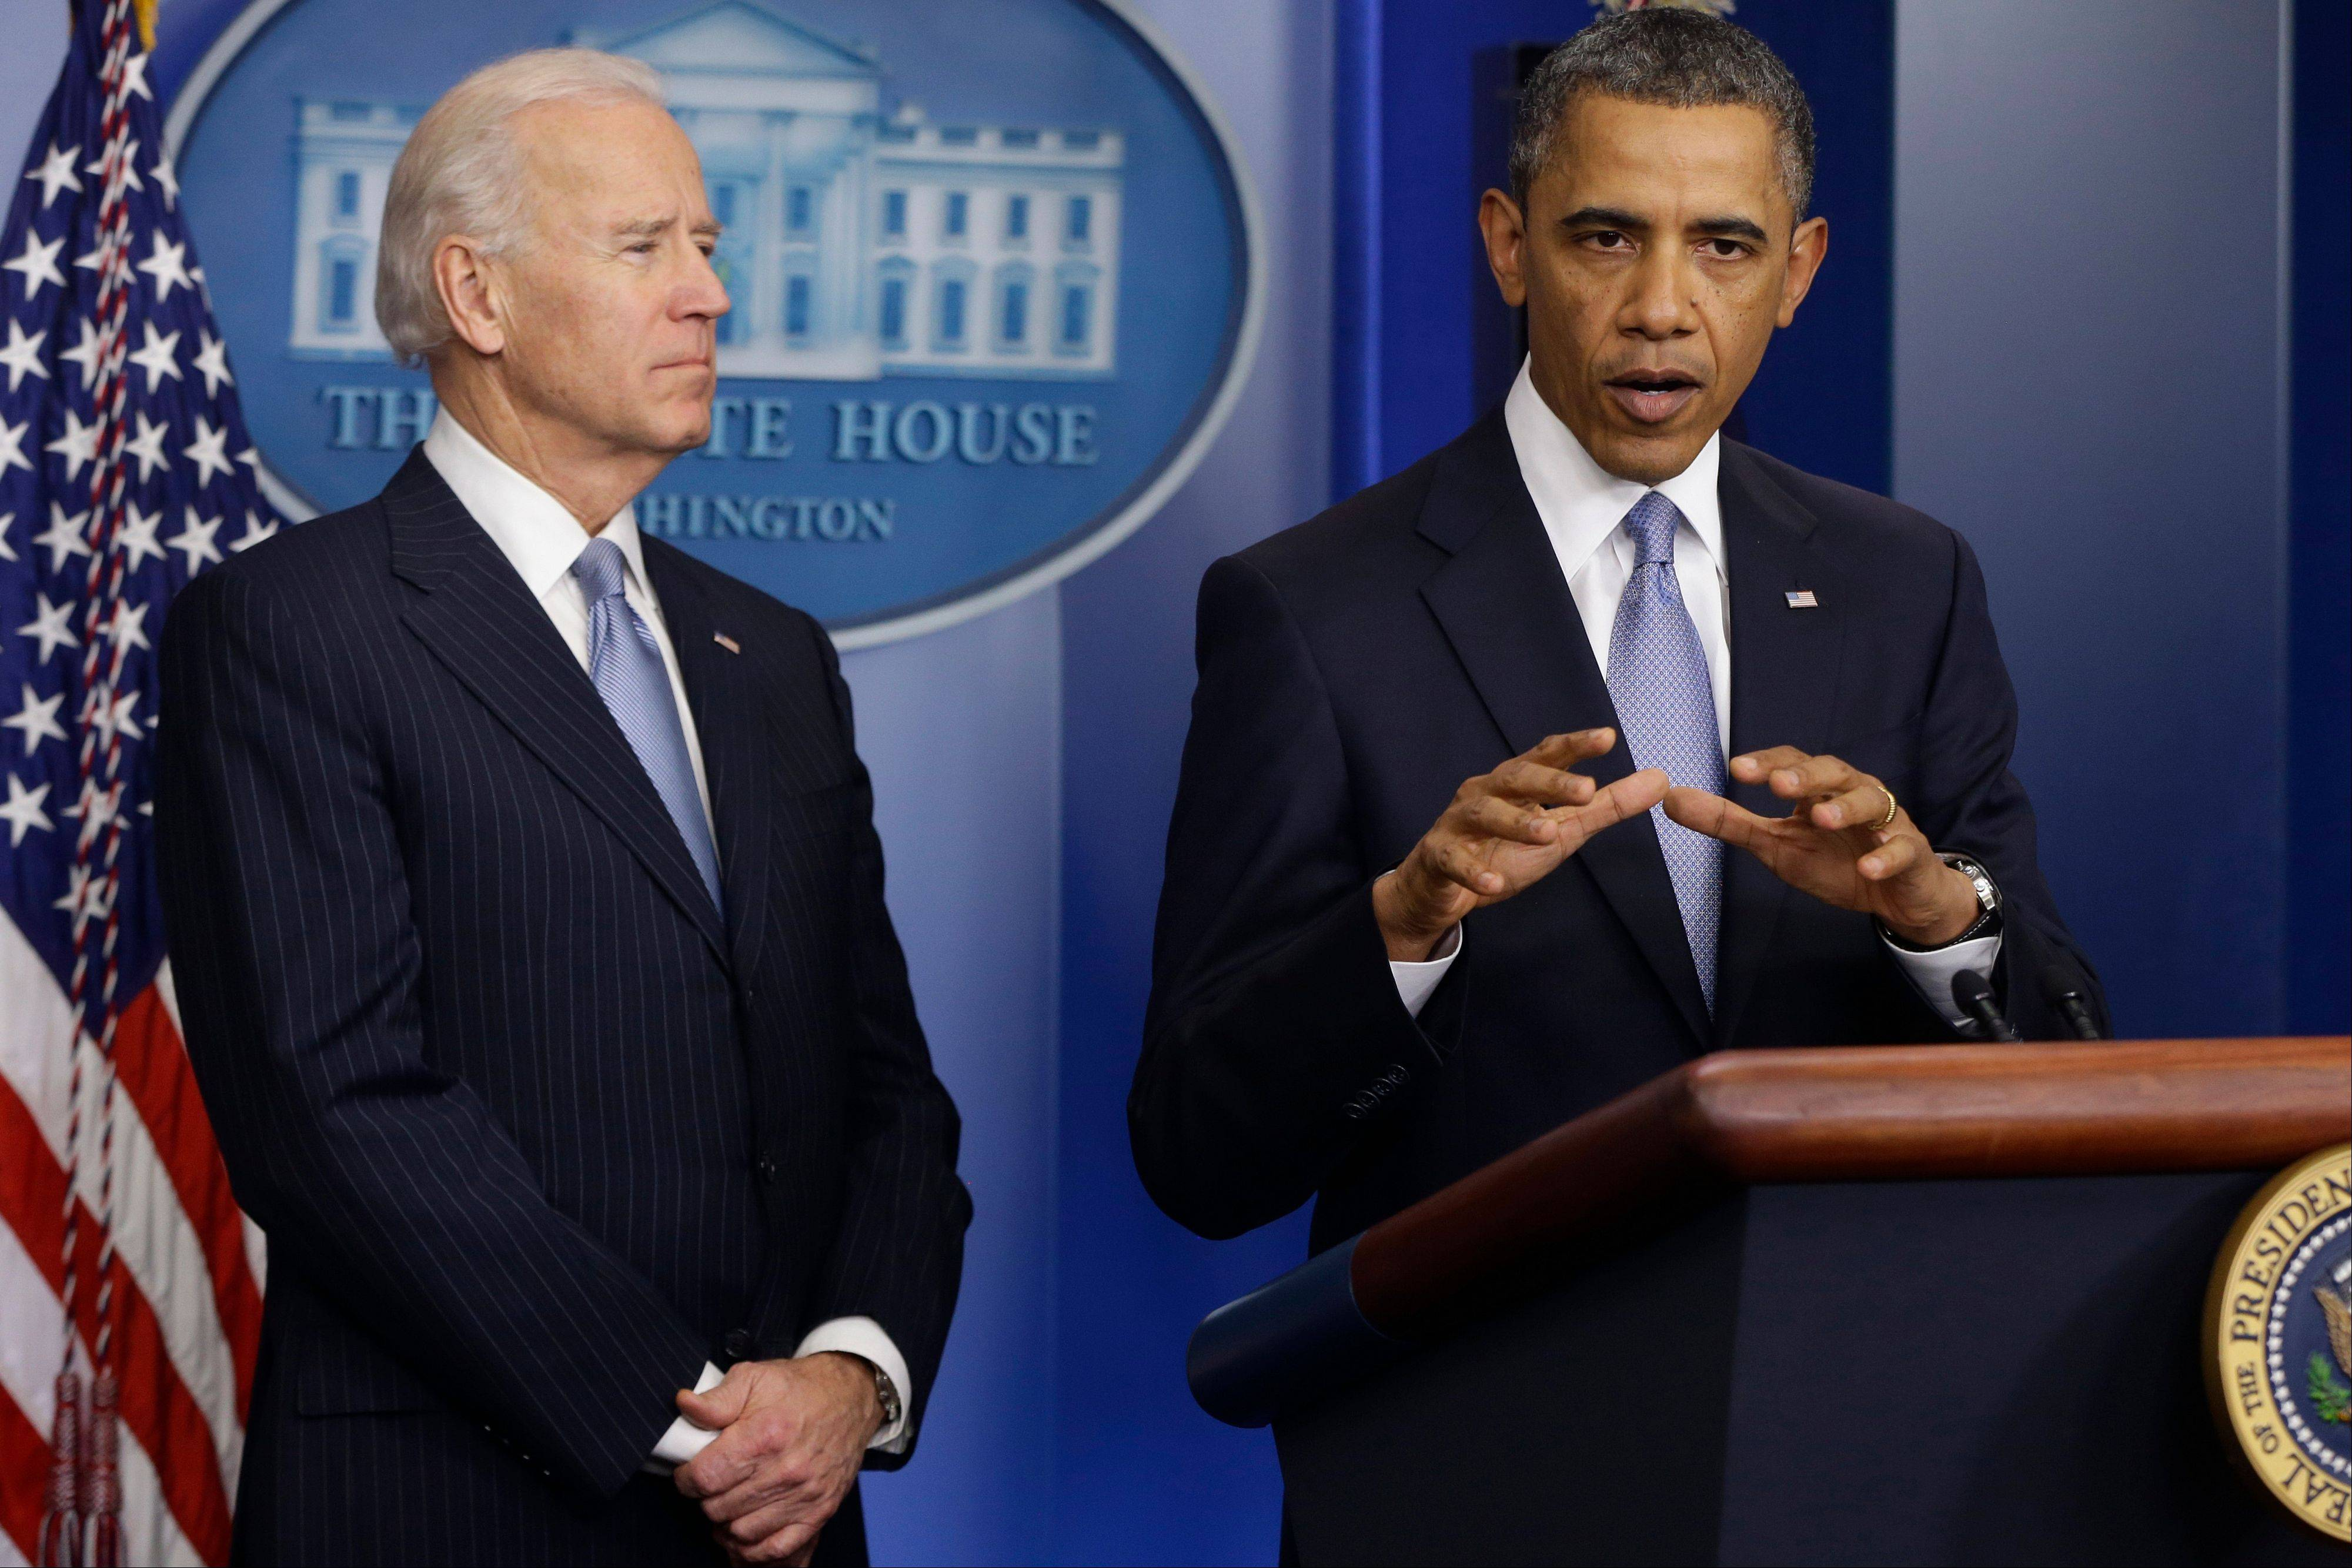 President Barack Obama and Vice President Joe Biden make a statement regarding passage of the fiscal cliff bill in the White House press briefing room Tuesday.